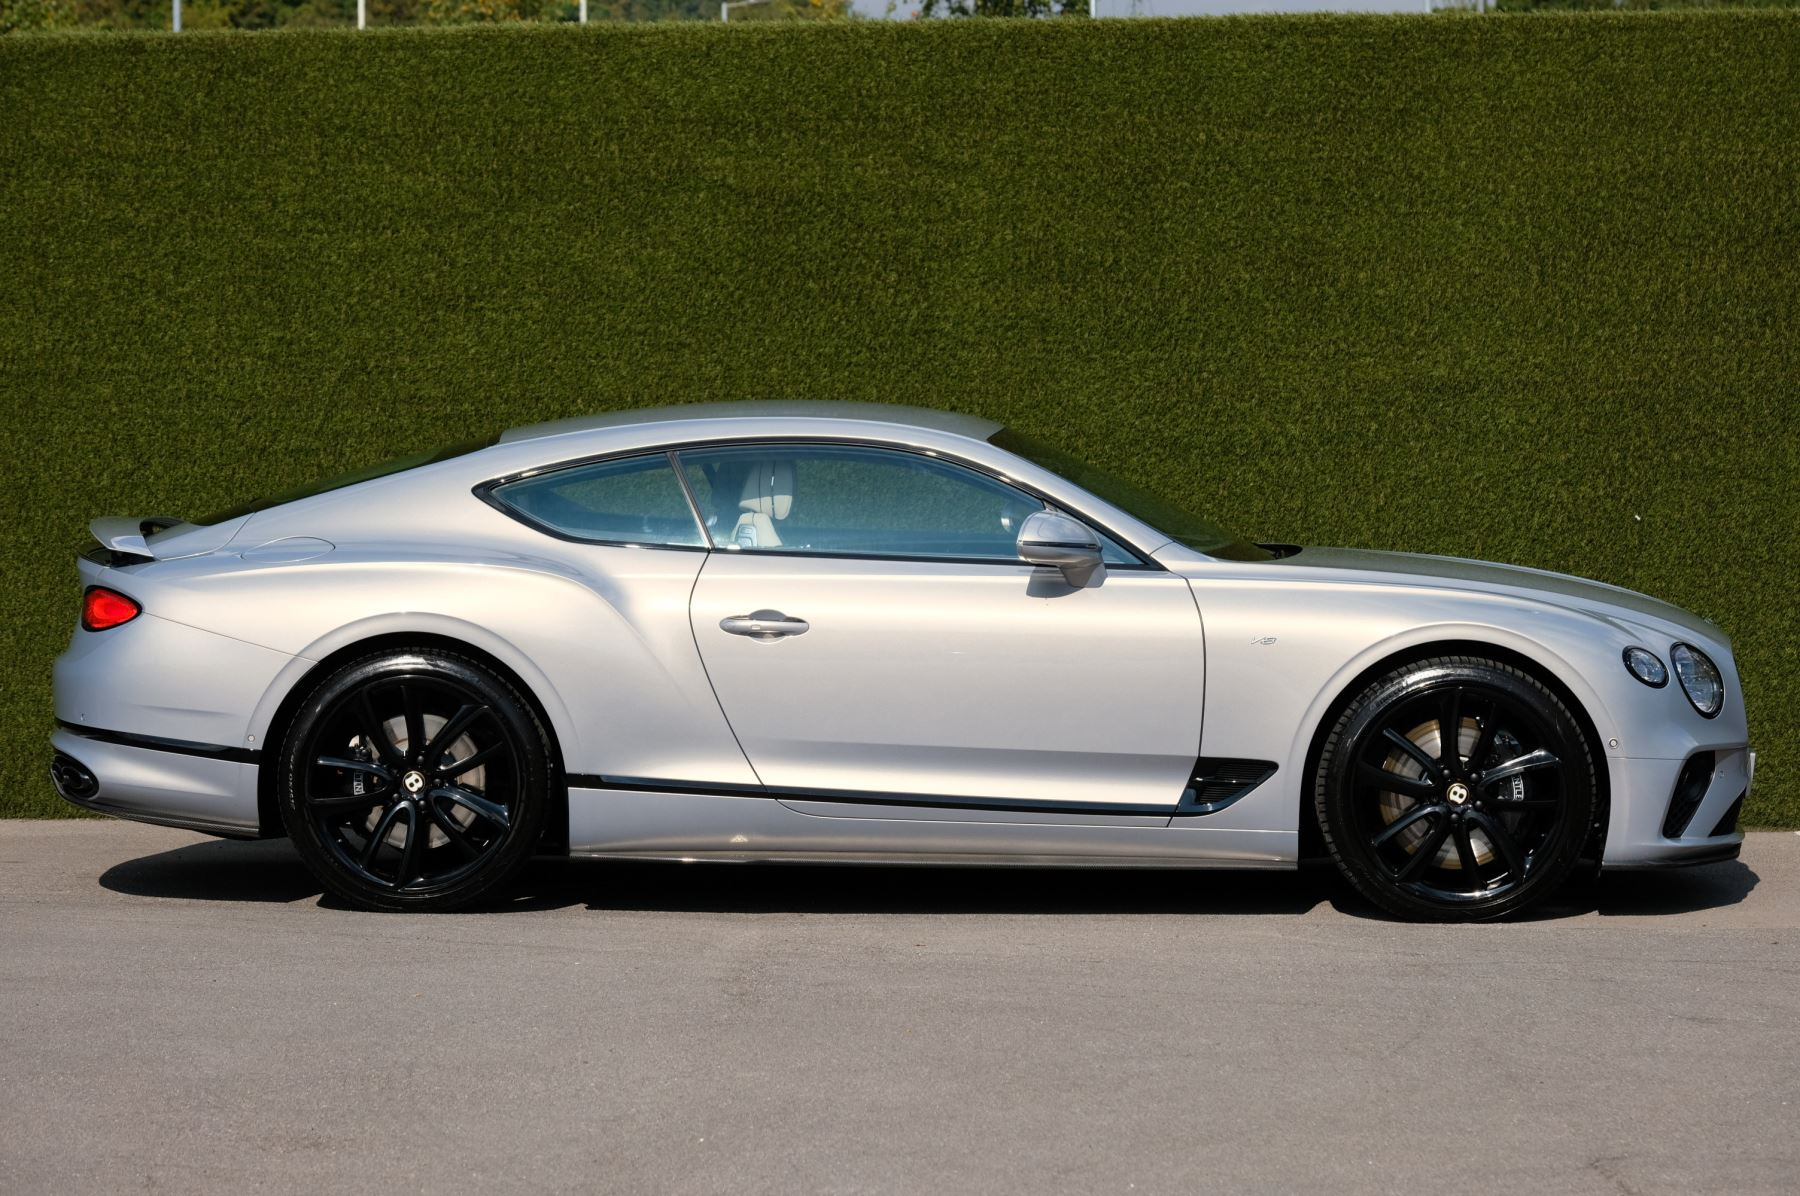 Bentley Continental GT 4.0 V8 - Mulliner Driving Specification with Black Painted Wheels - Touring and Centenary Spec image 3